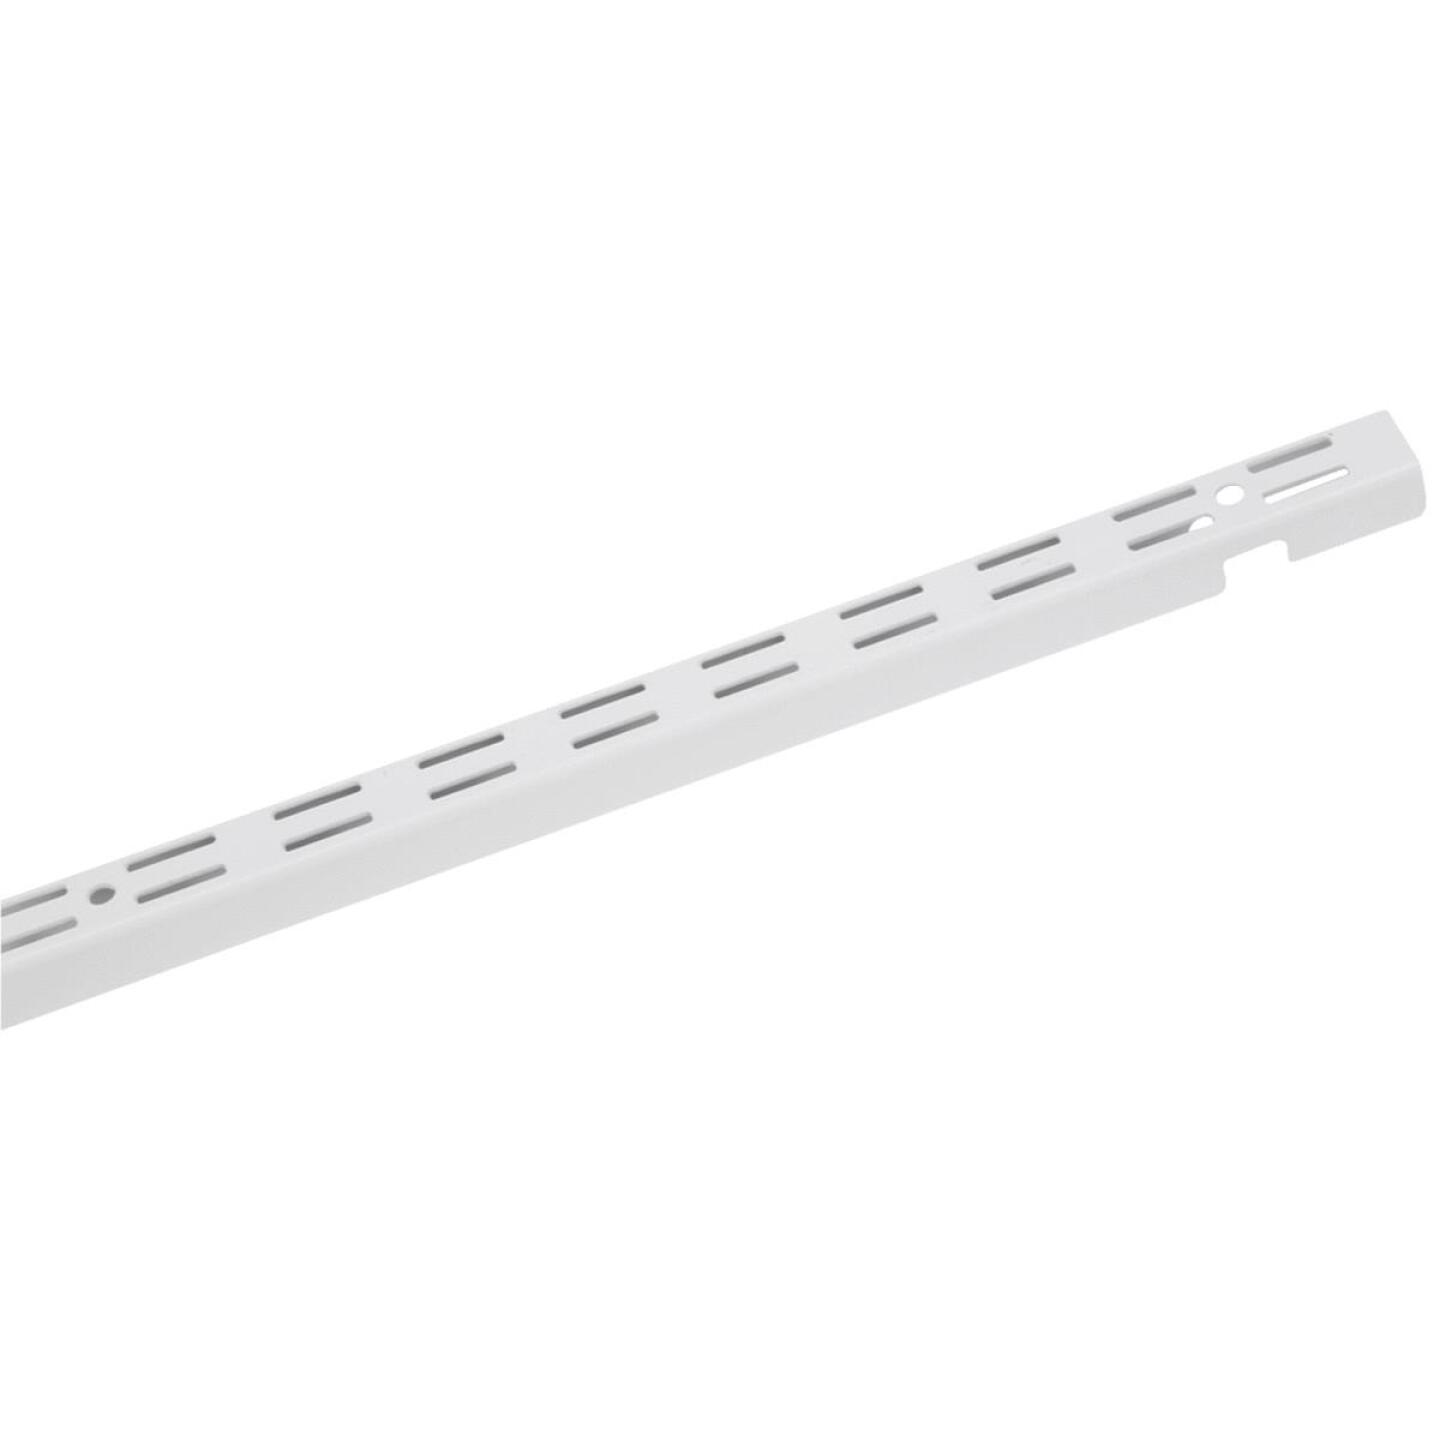 Closetmaid ShelfTrack 84 In. White Closet Shelf Standard Image 1